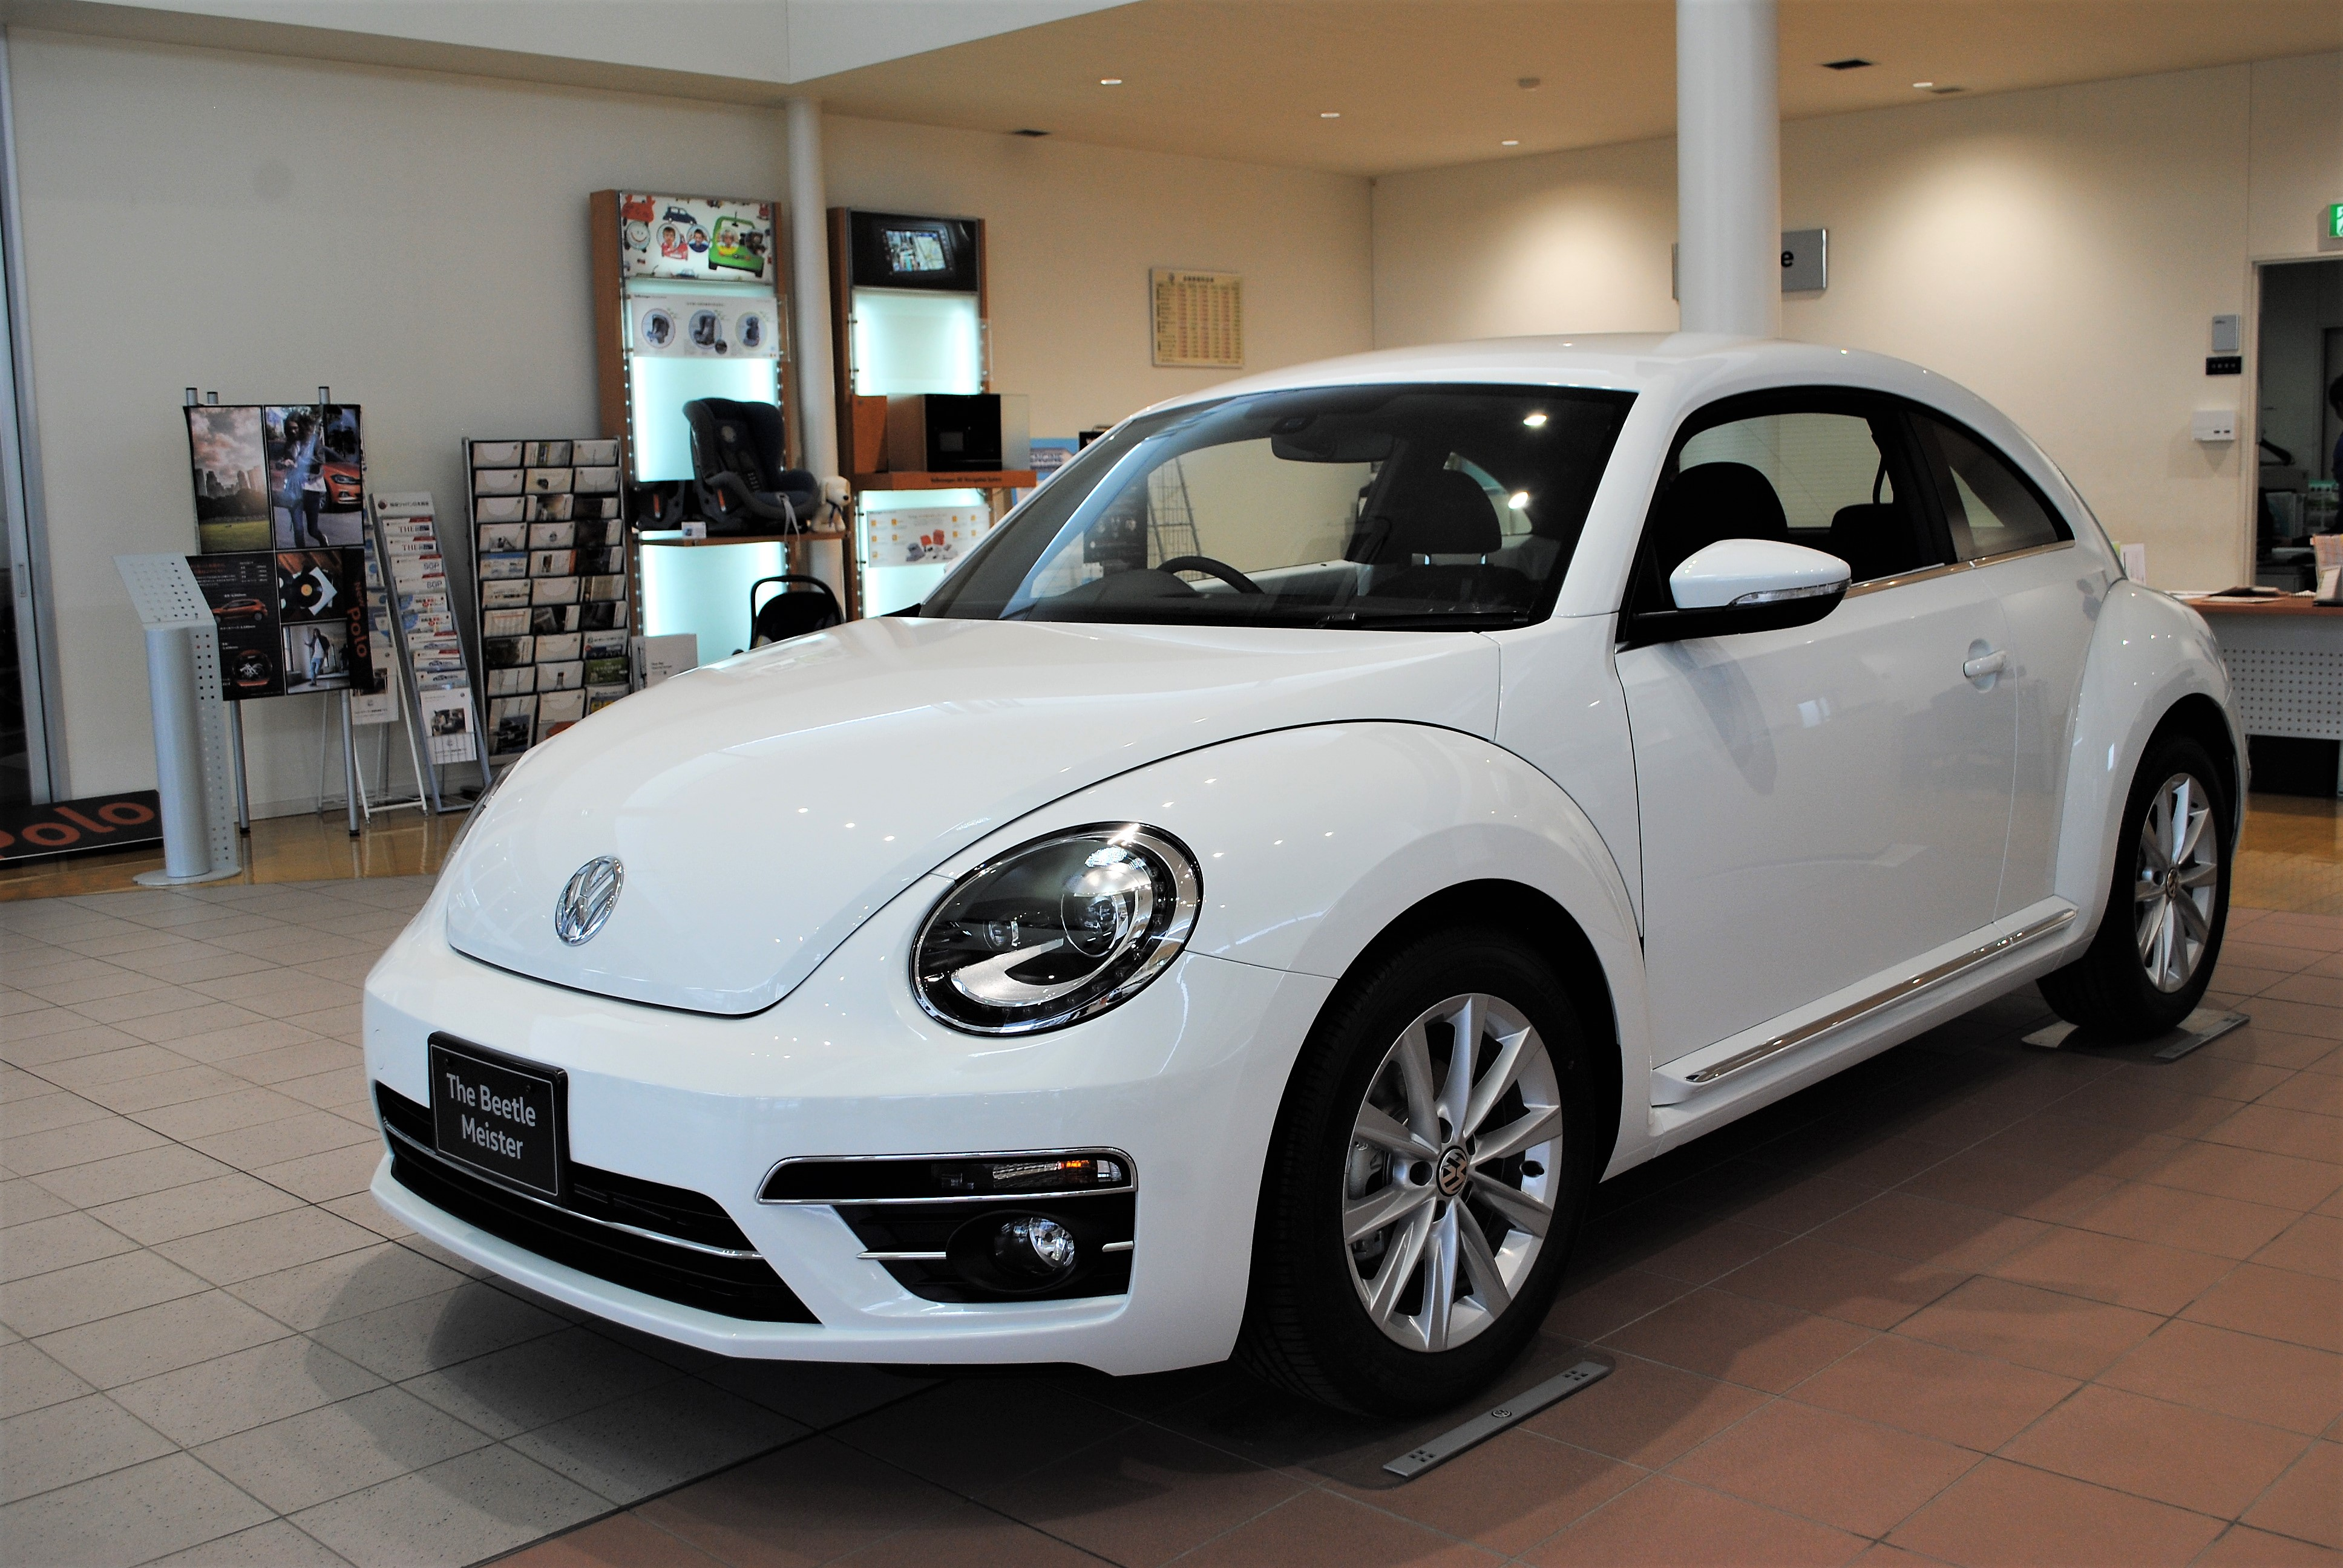 The Beetle Design Meisterの画像1